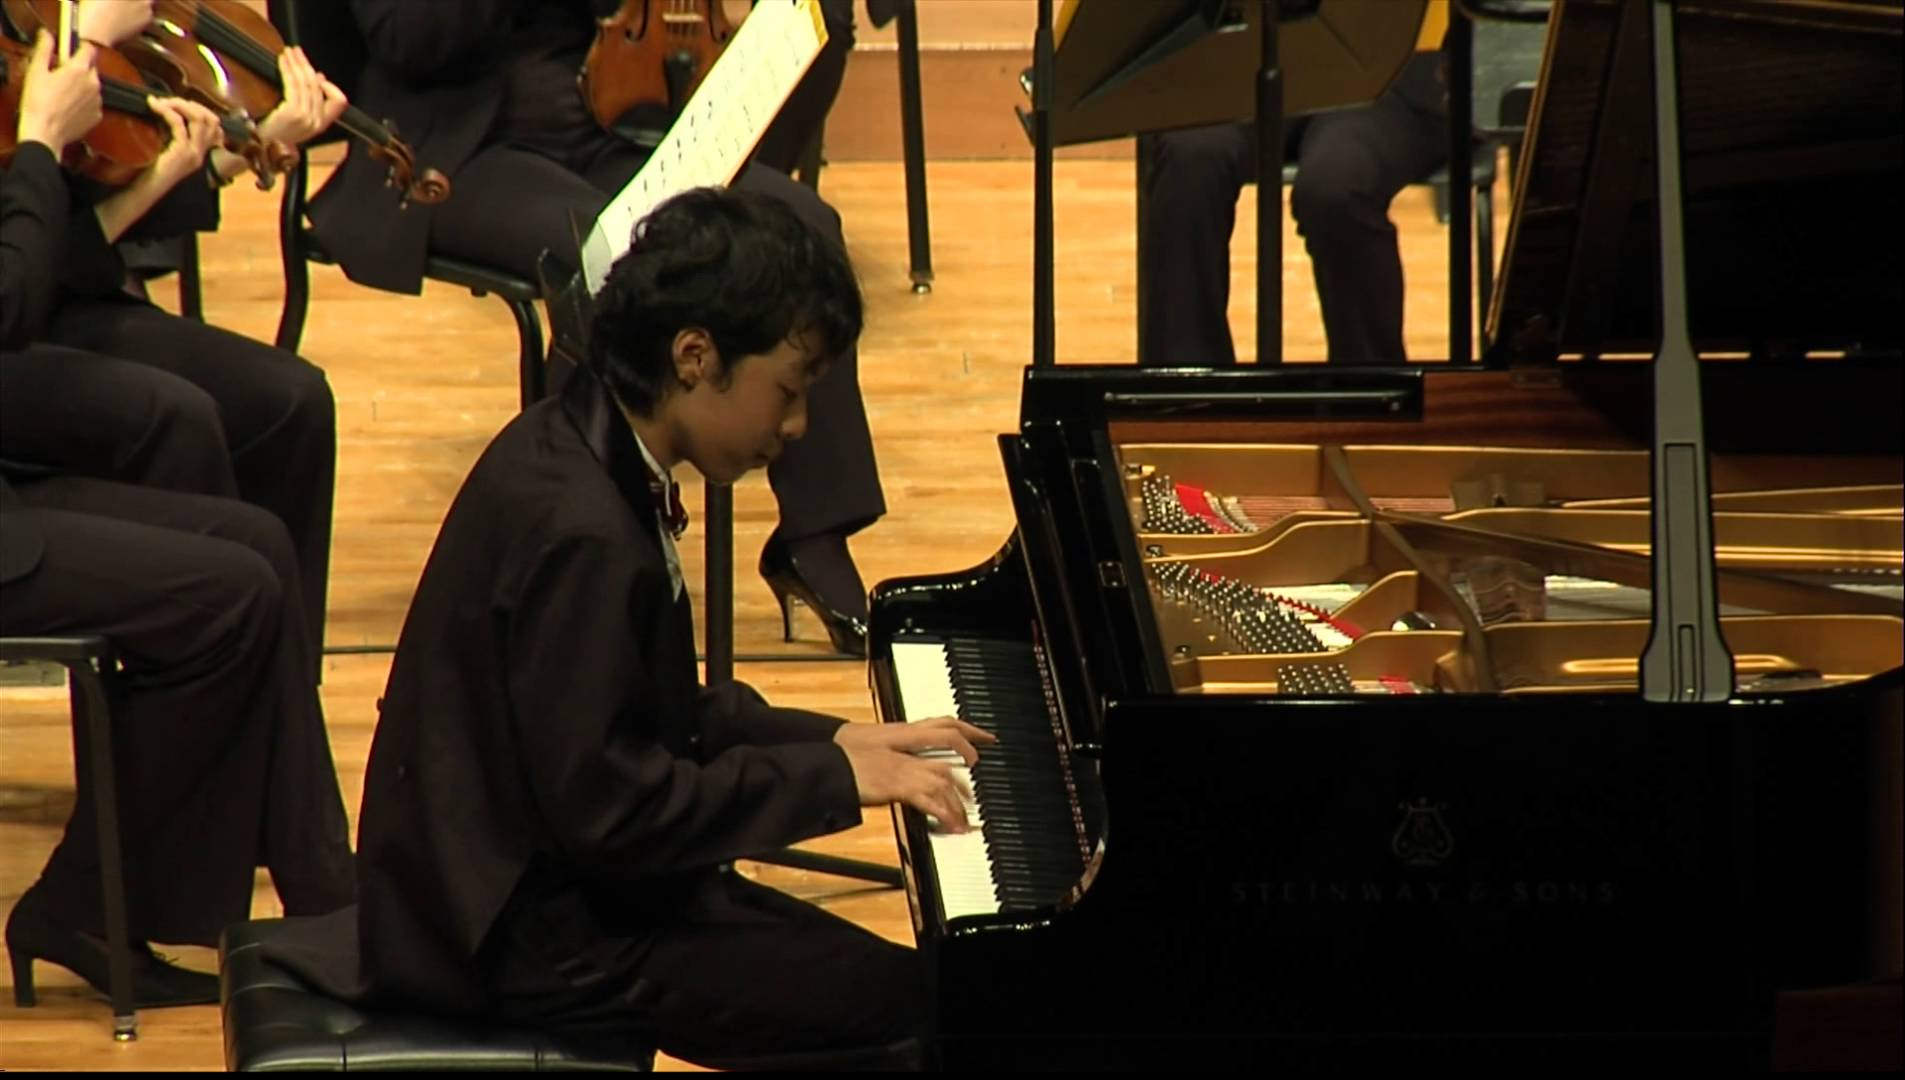 A Korean wins Poland's other piano trophy